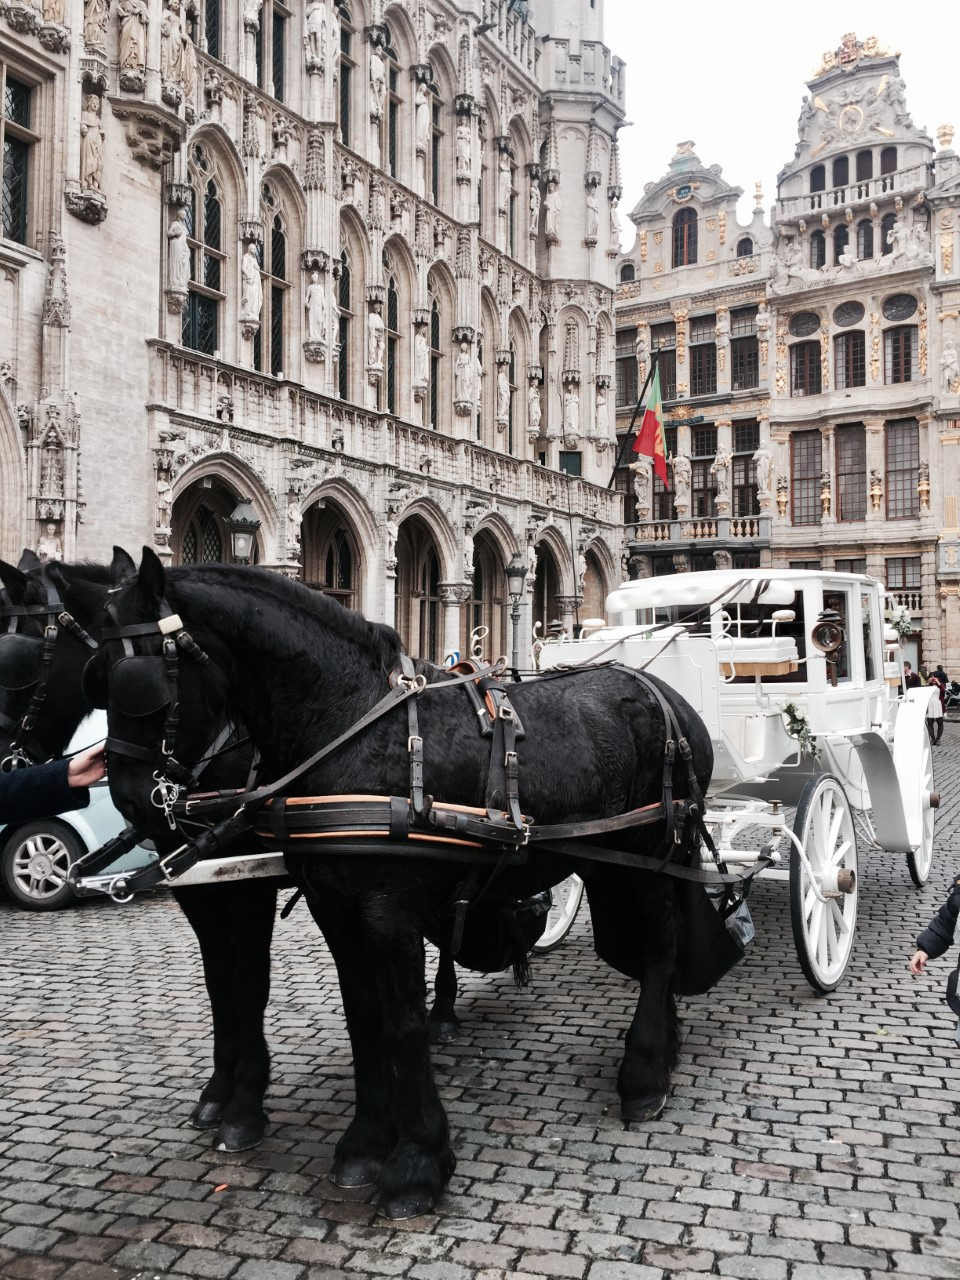 GRAND PLACE/GROTE MARKET  - The an iconic square in the Belgian capital of Brussels. Amazing architectures, just browse around while admiring the amazing buildings.